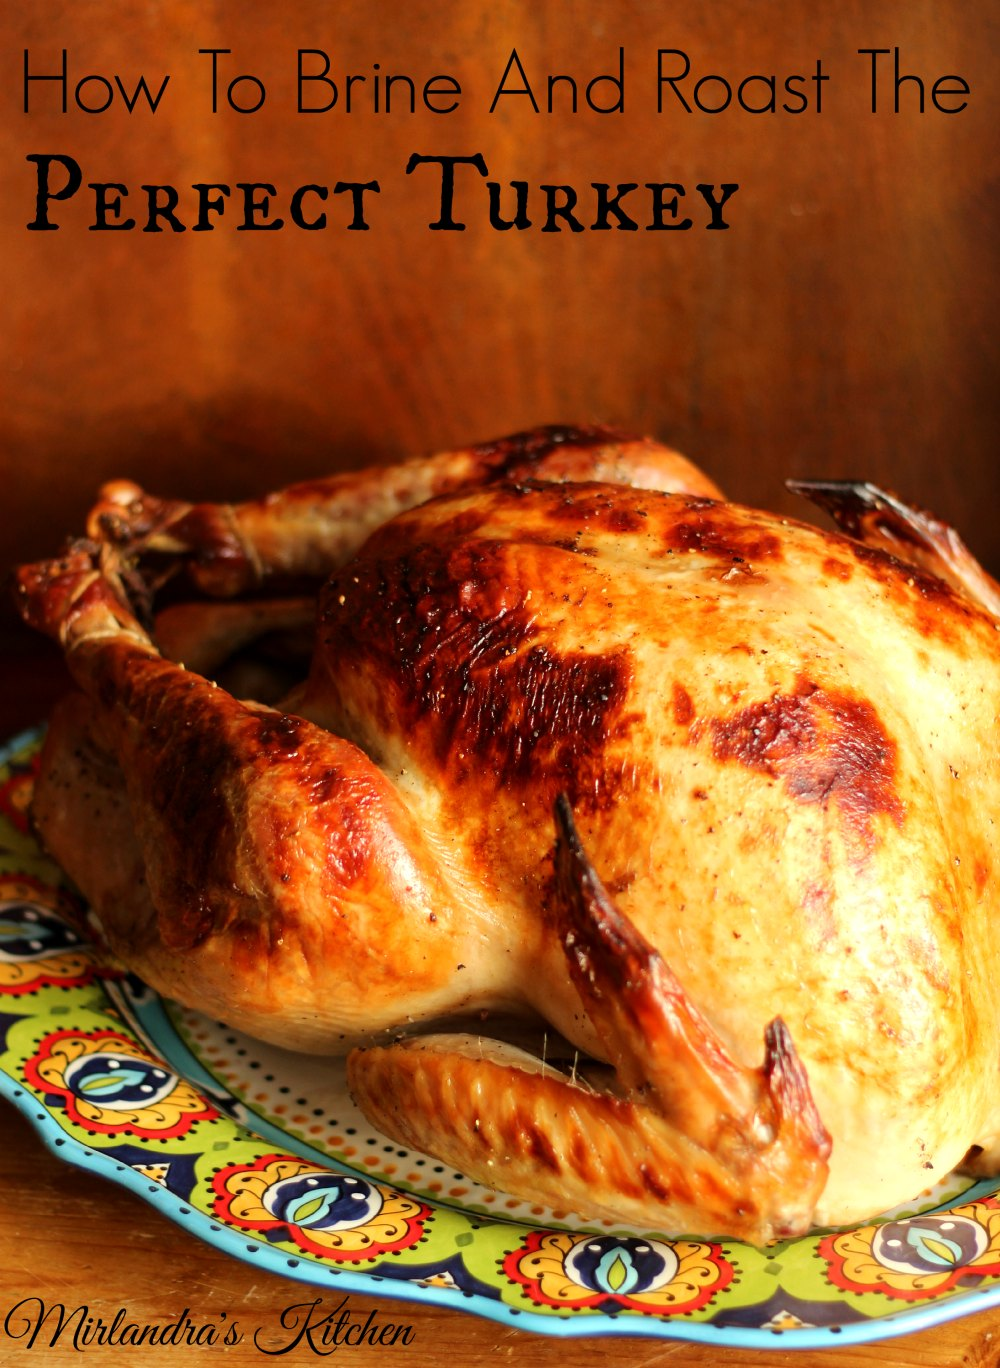 This flavorful turkey brine recipe and simple roasting directions will make your Thanksgiving prep easy.